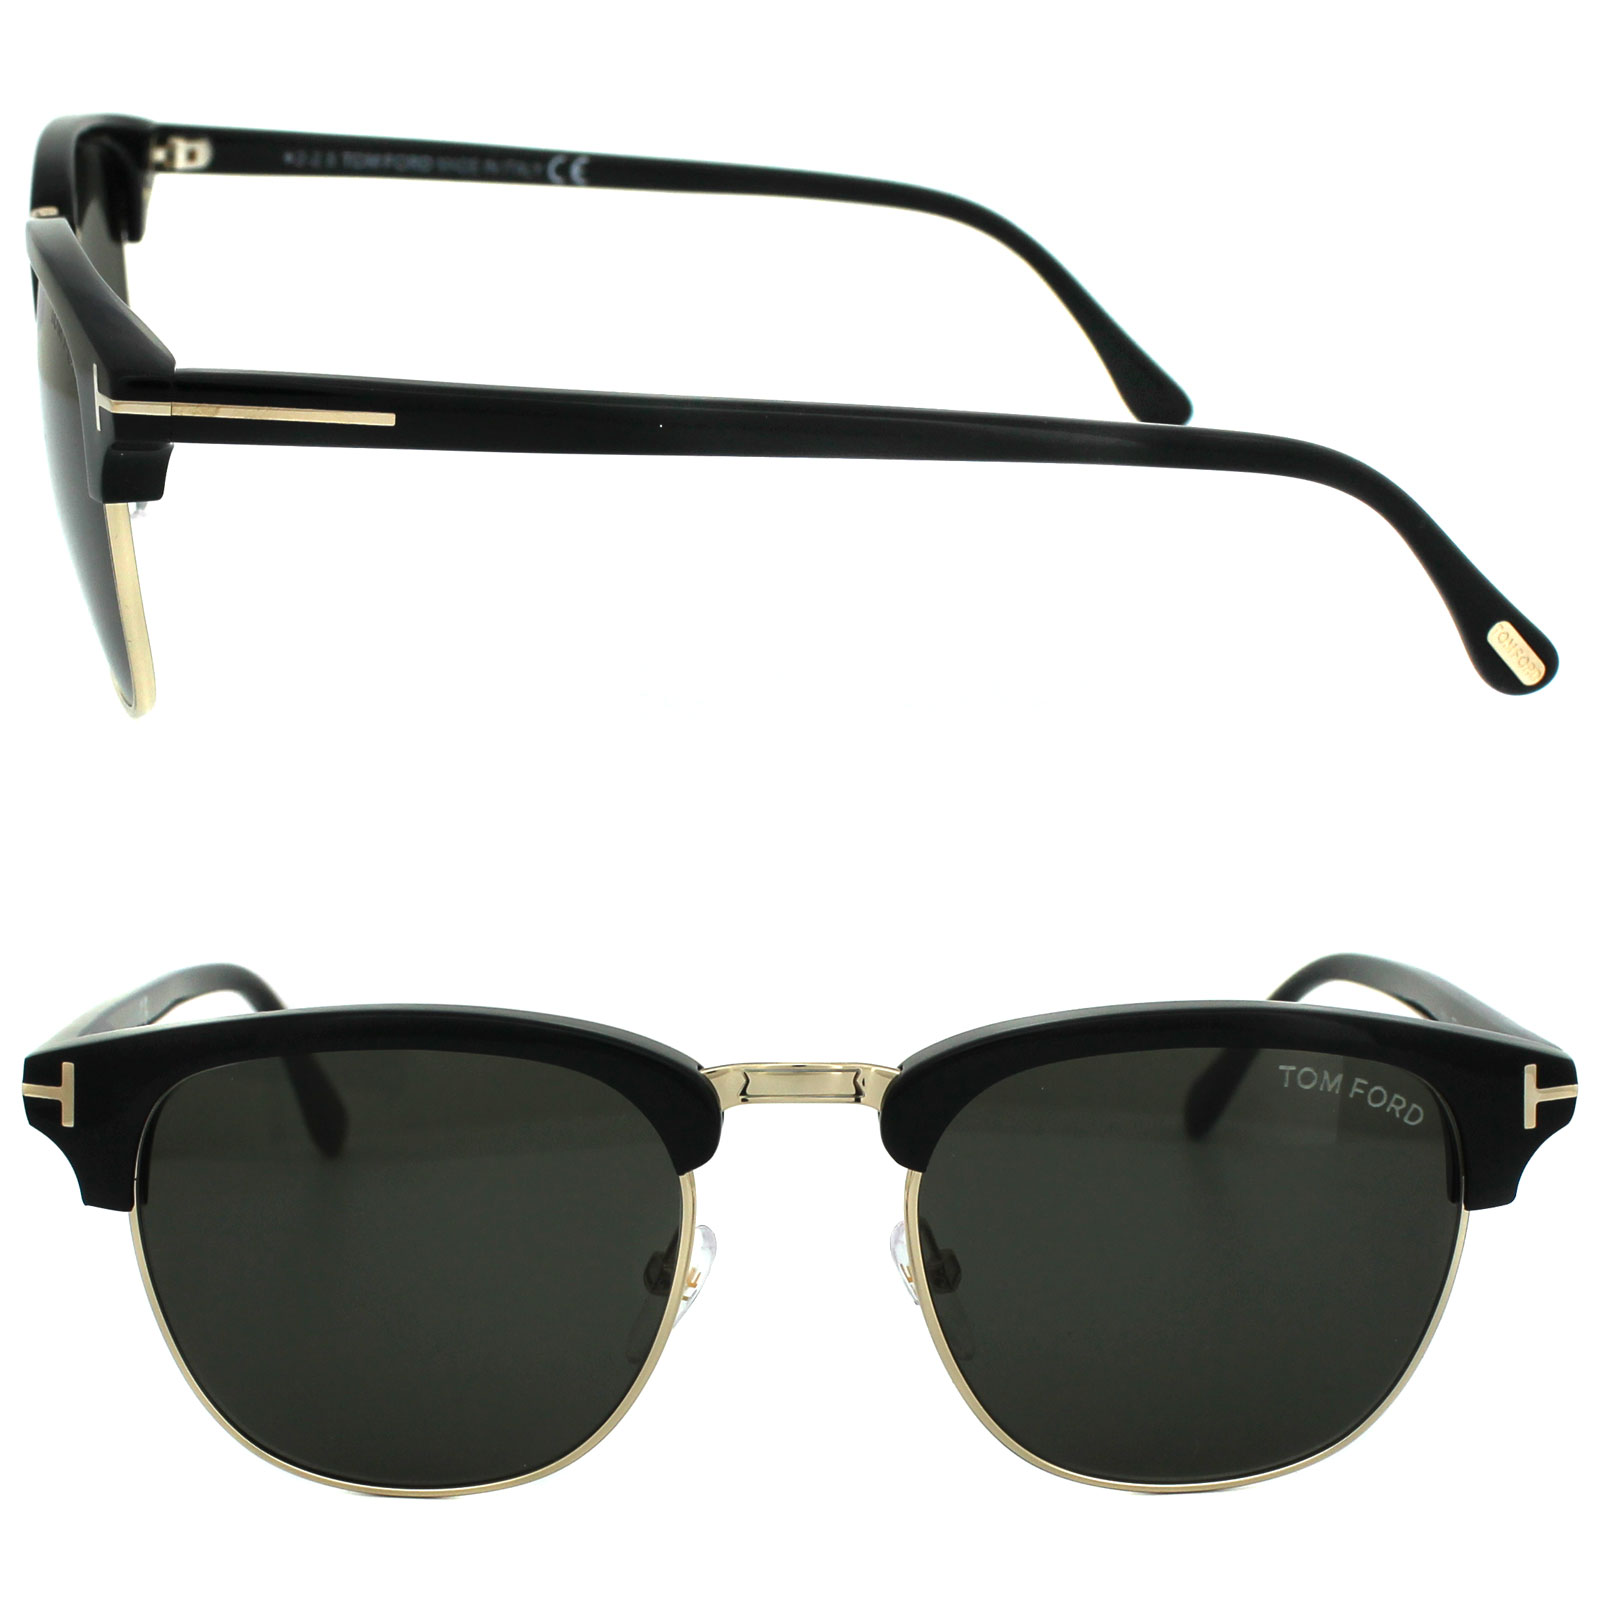 Cheap Tom Ford 0248 Henry Sunglasses Discounted Sunglasses